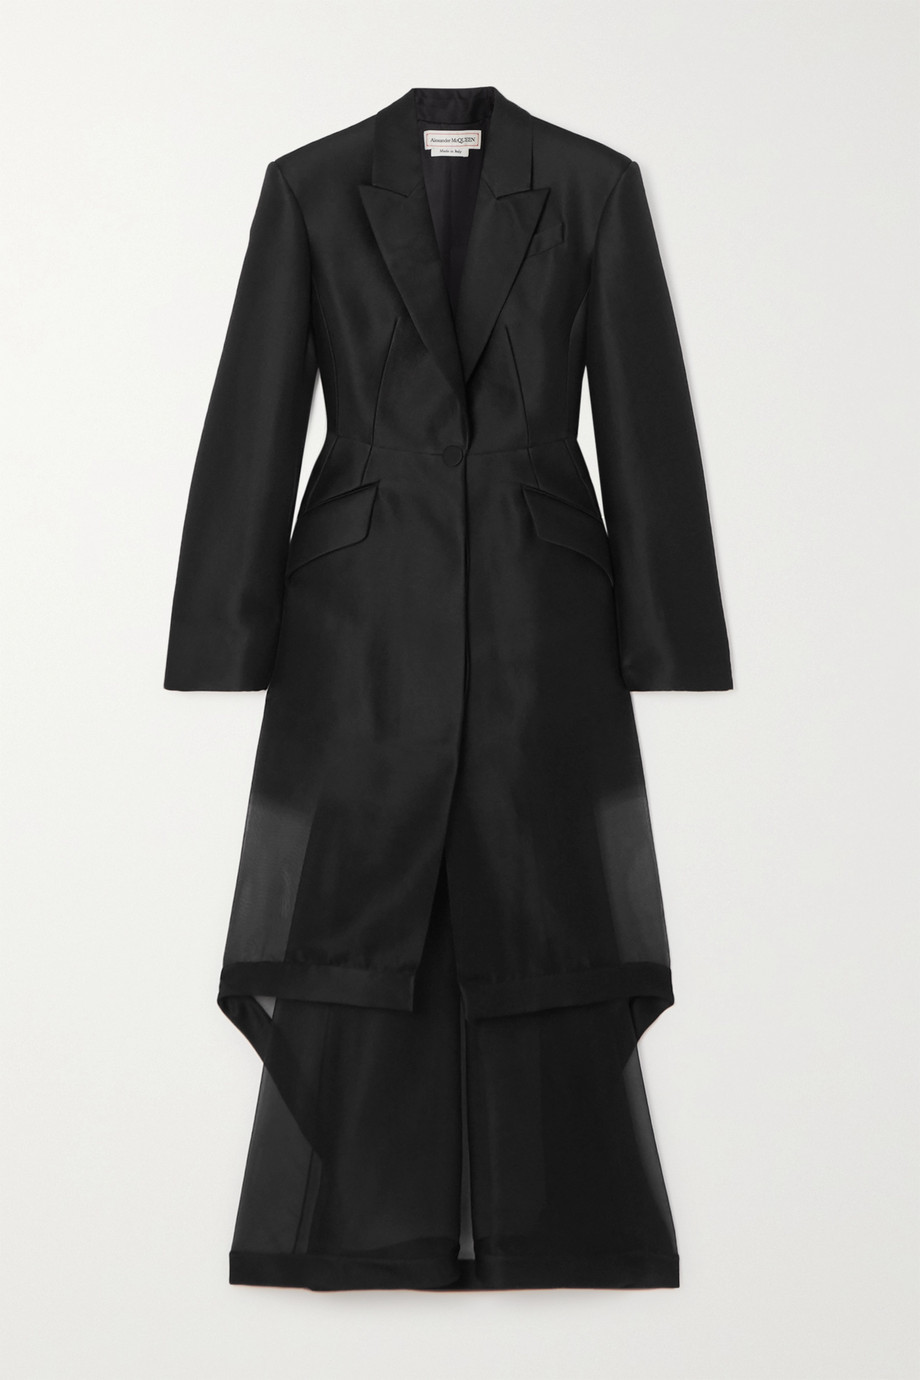 Alexander McQueen Layered asymmetric wool and silk-blend organza coat